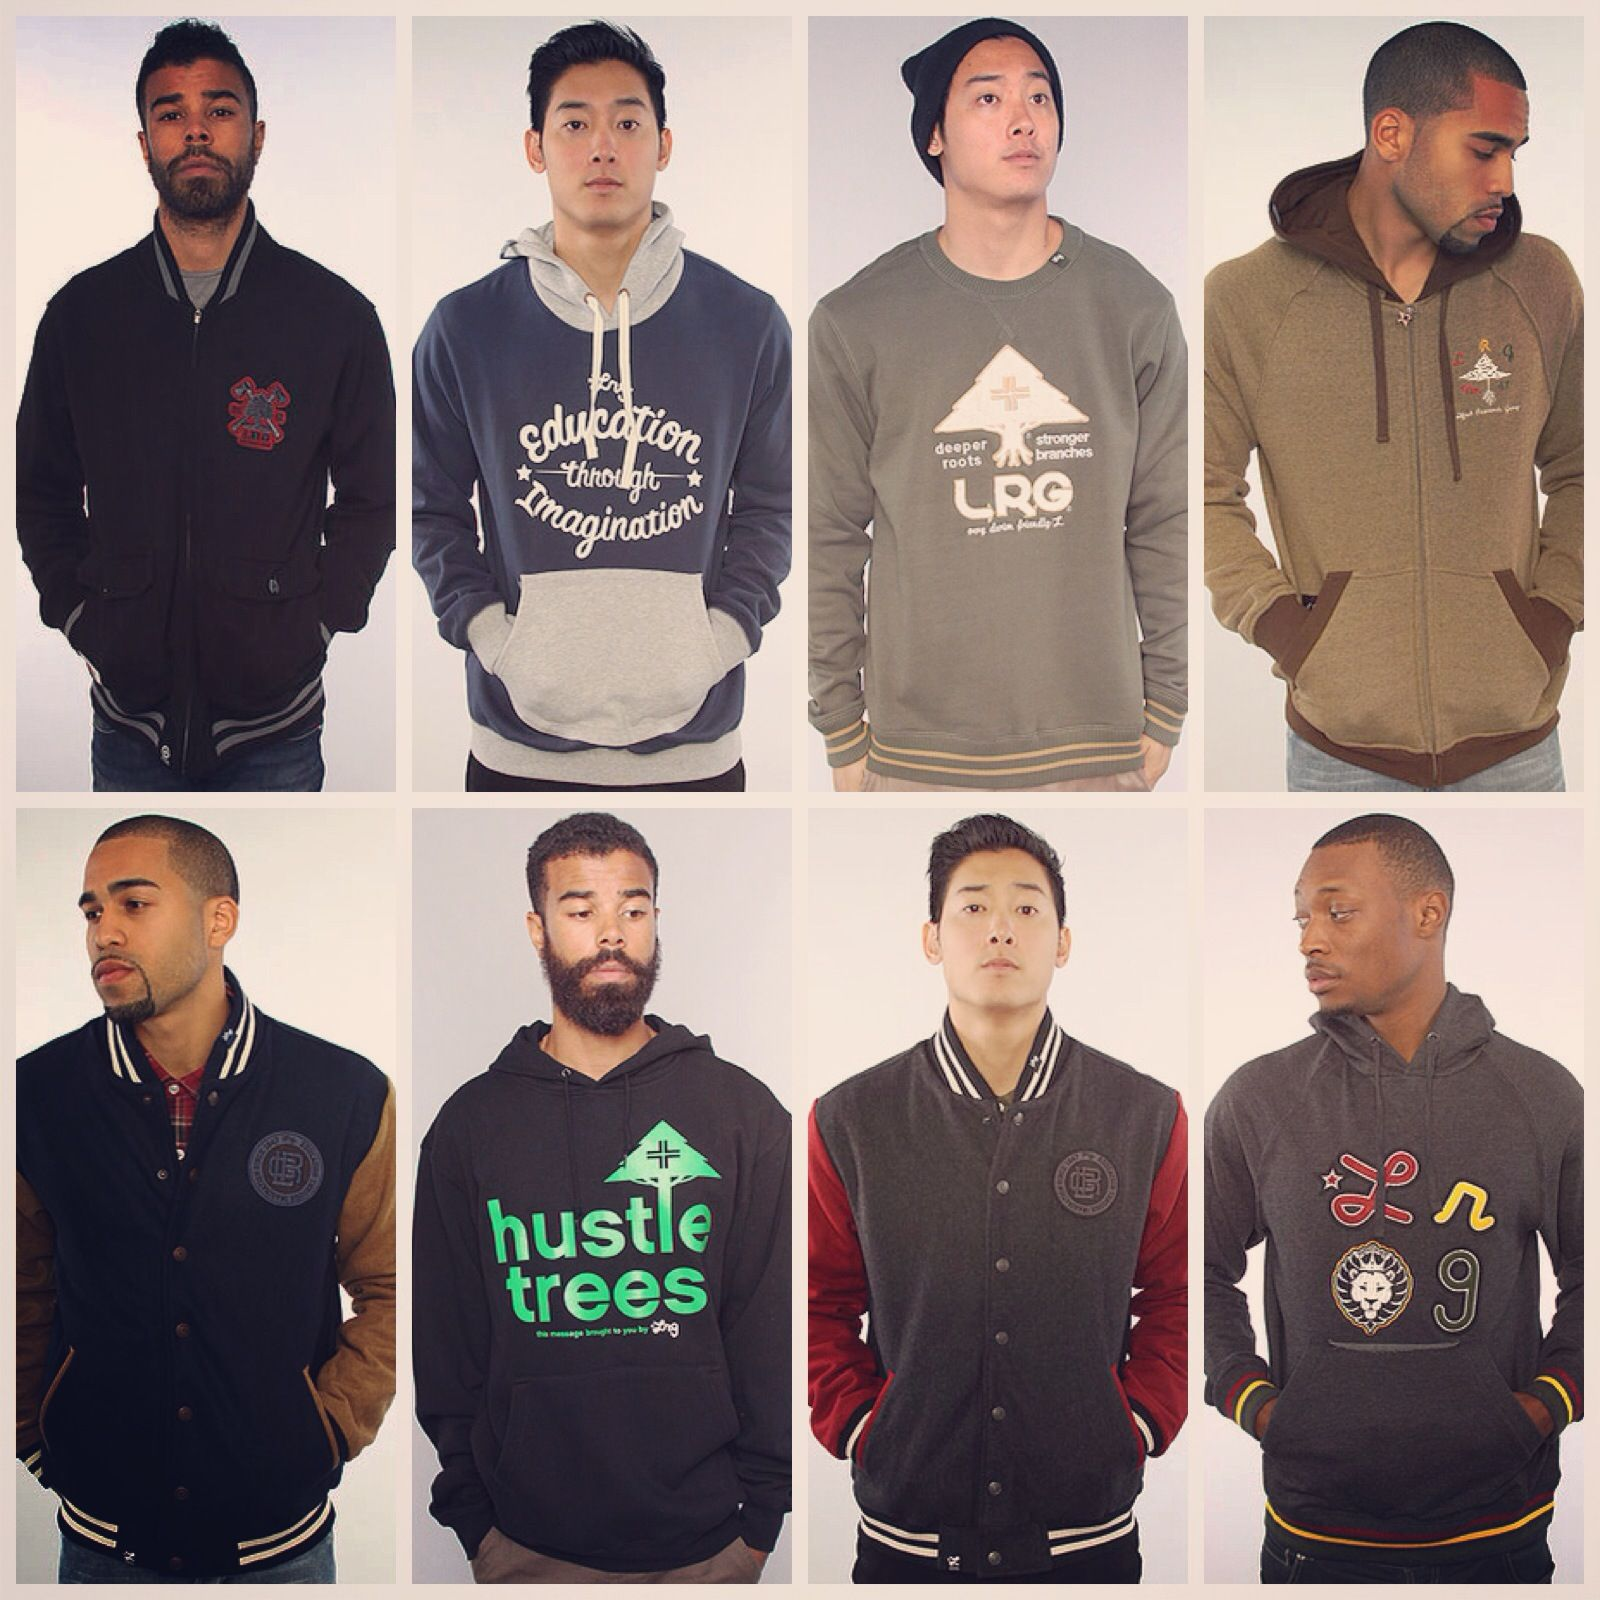 ef7de6cd37 New  amp  Restocked Jackets and Hoodies from LRG. Available to purchase at  Karmaloop.